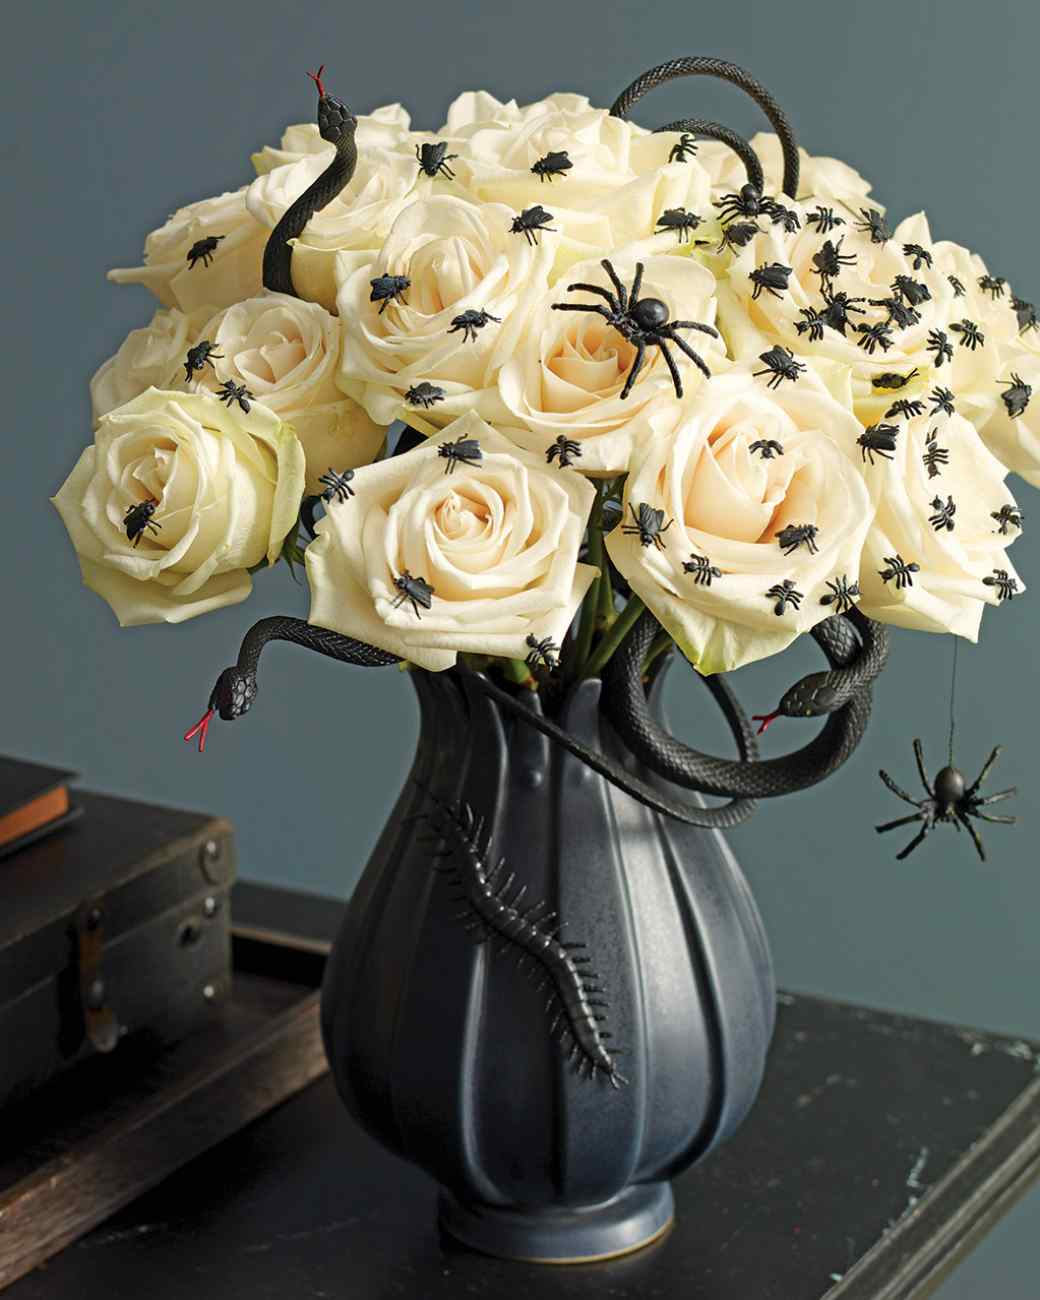 26 a creepy crawlies haven - Halloween Table Decorations